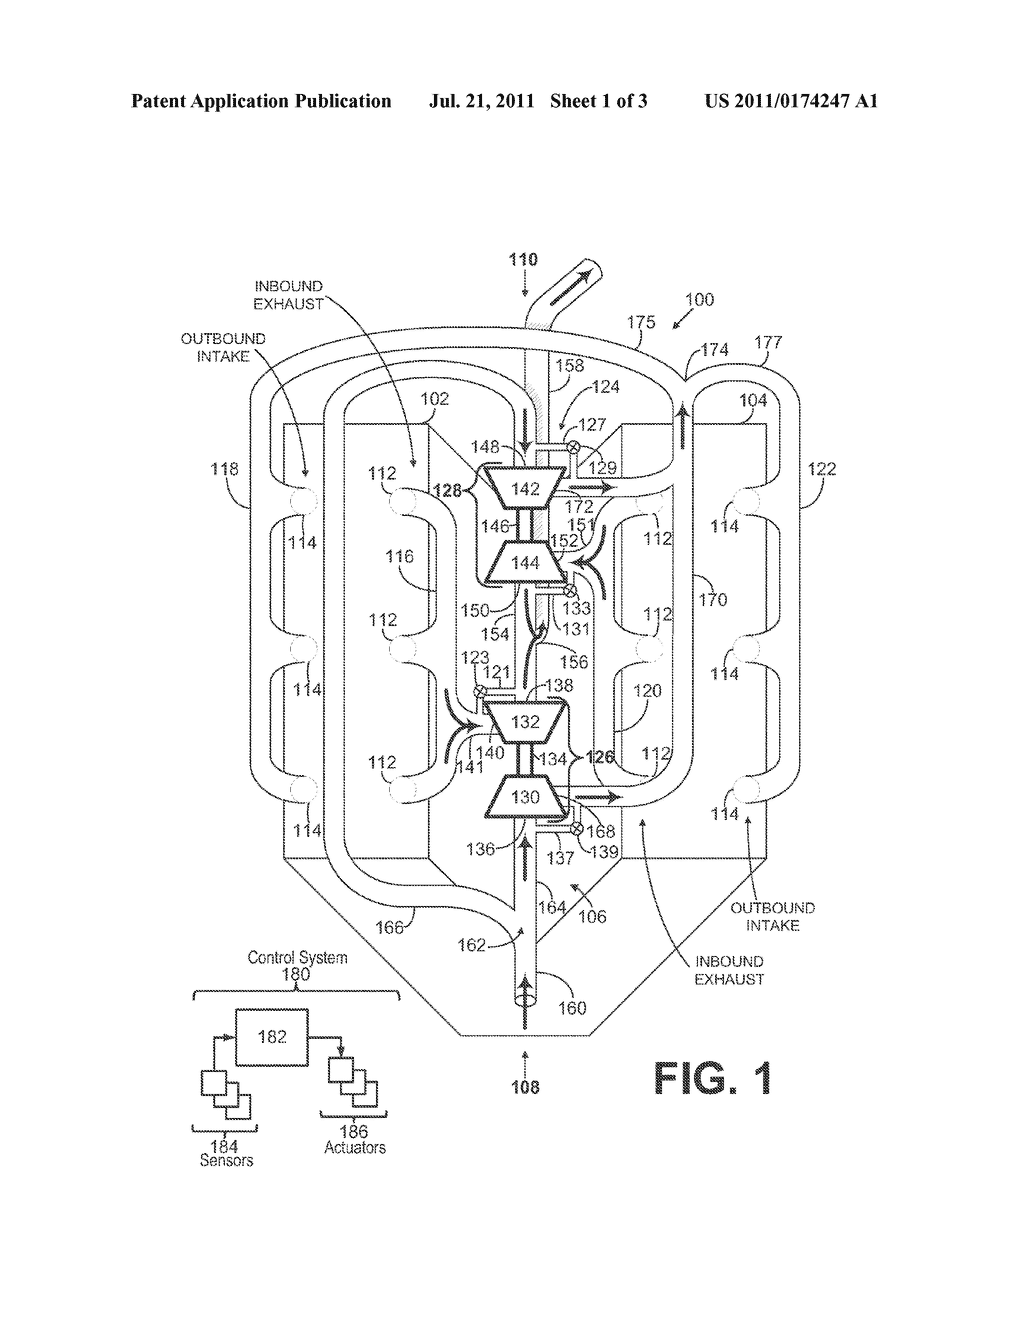 hight resolution of central turbocharger mounting configuration for a twin turbo engine diagram schematic and image 02